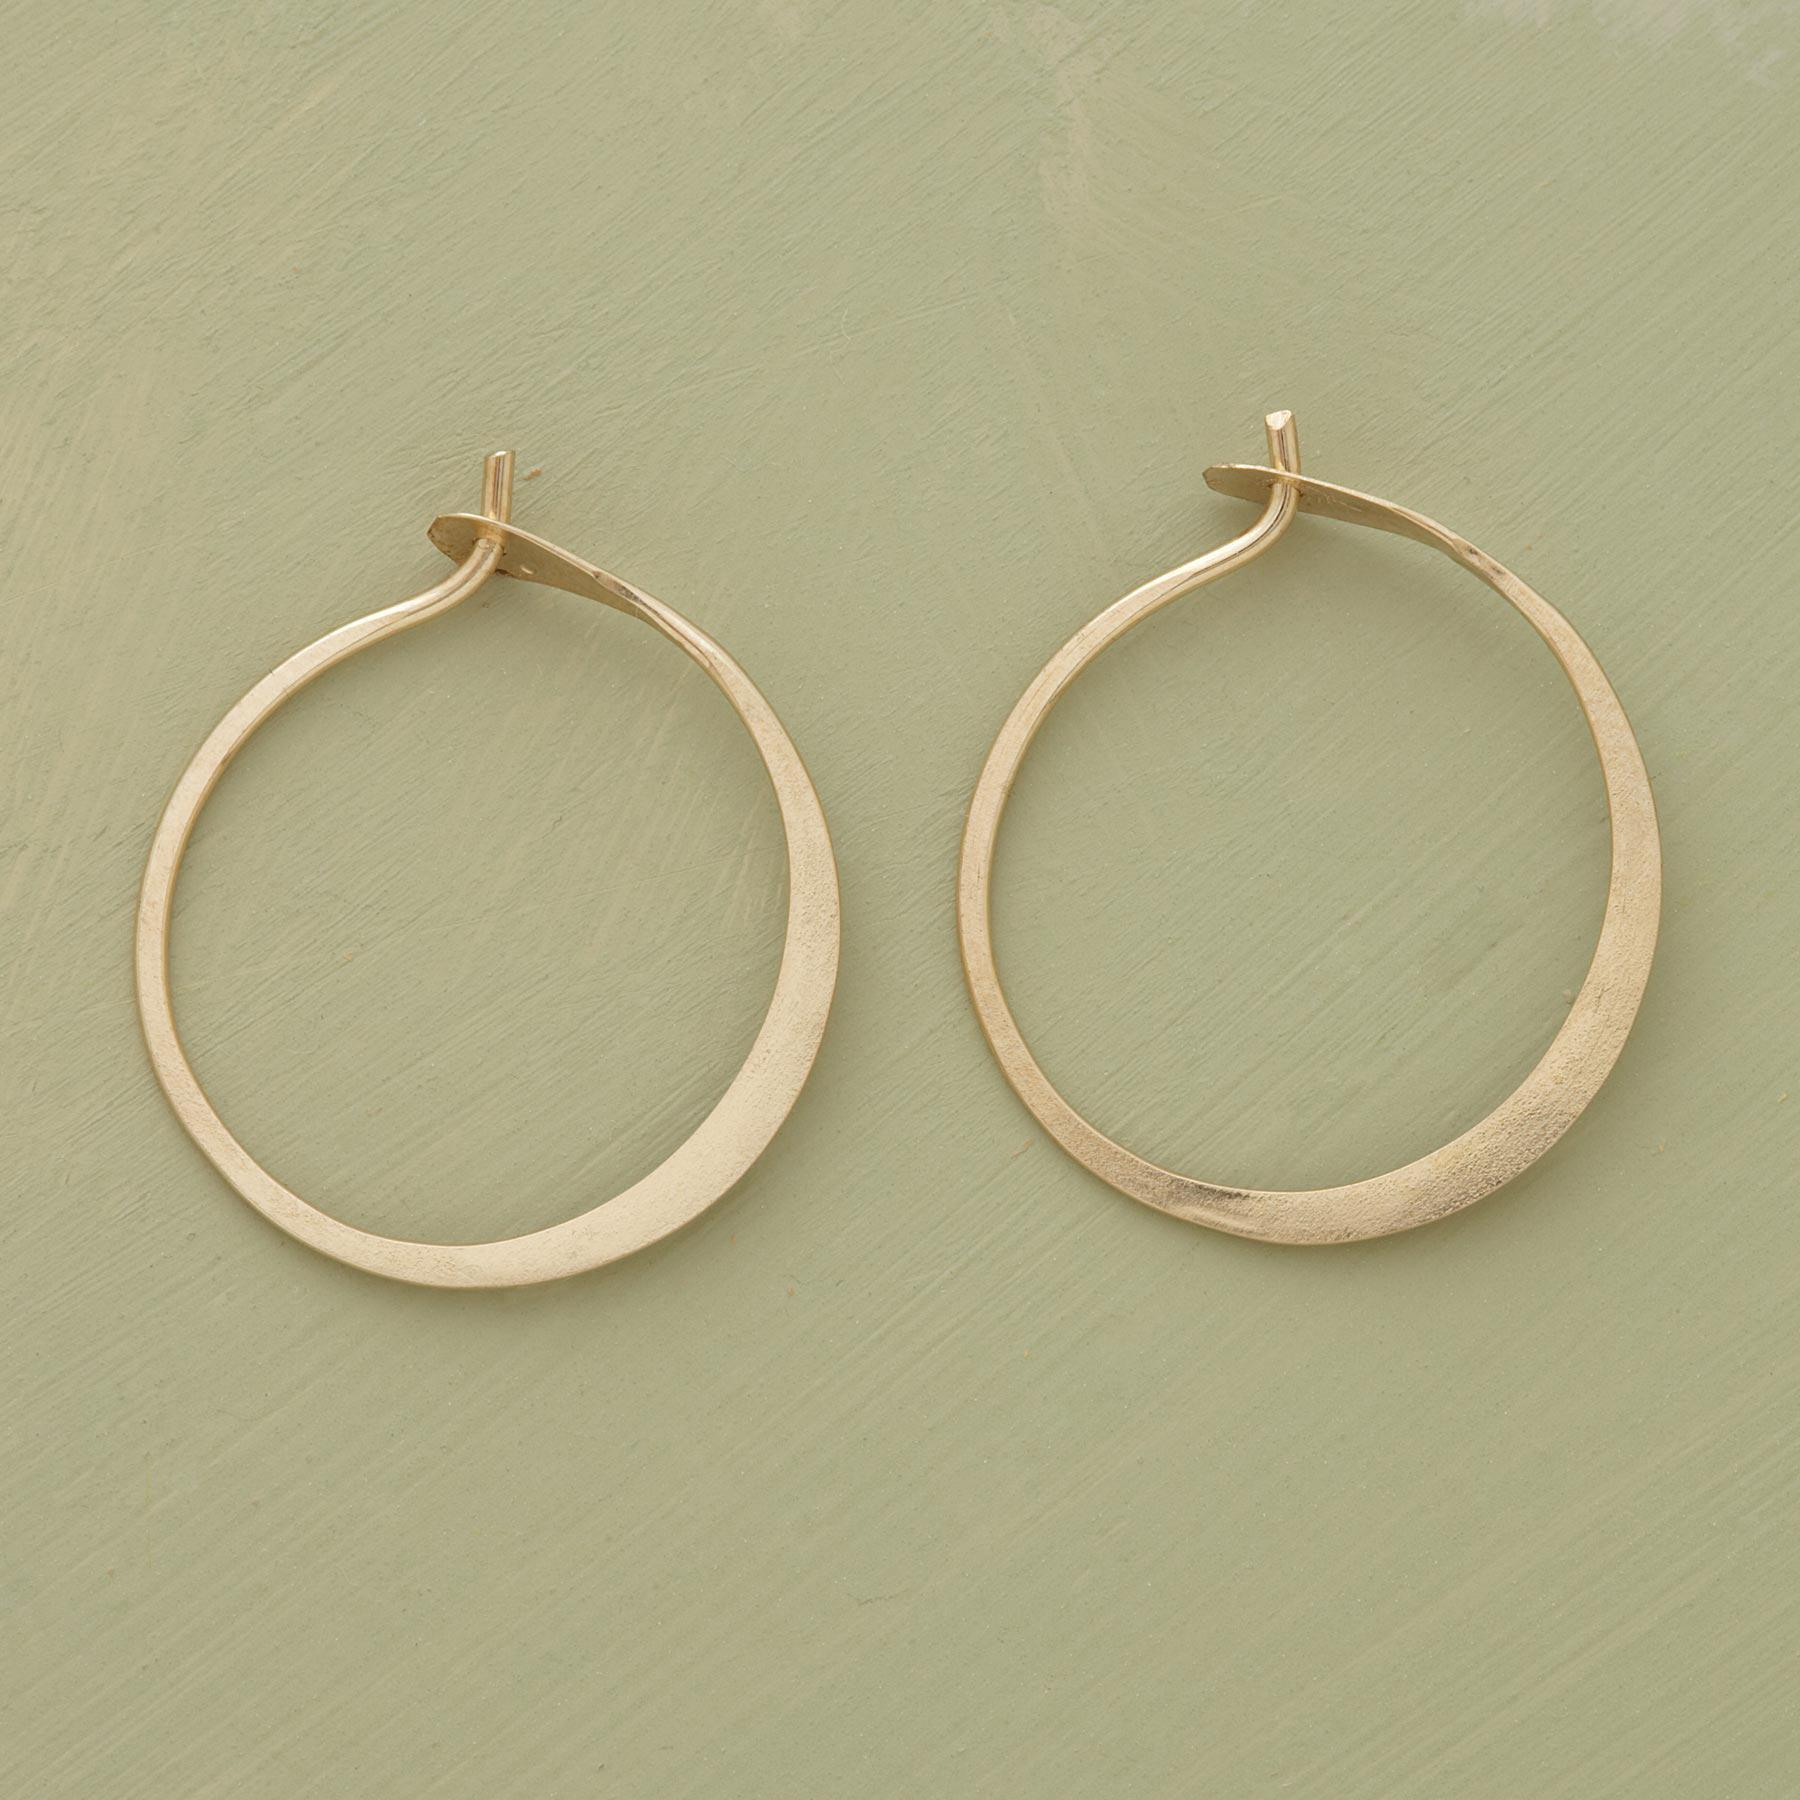 Small Hand Forged Gold Hoop Earrings